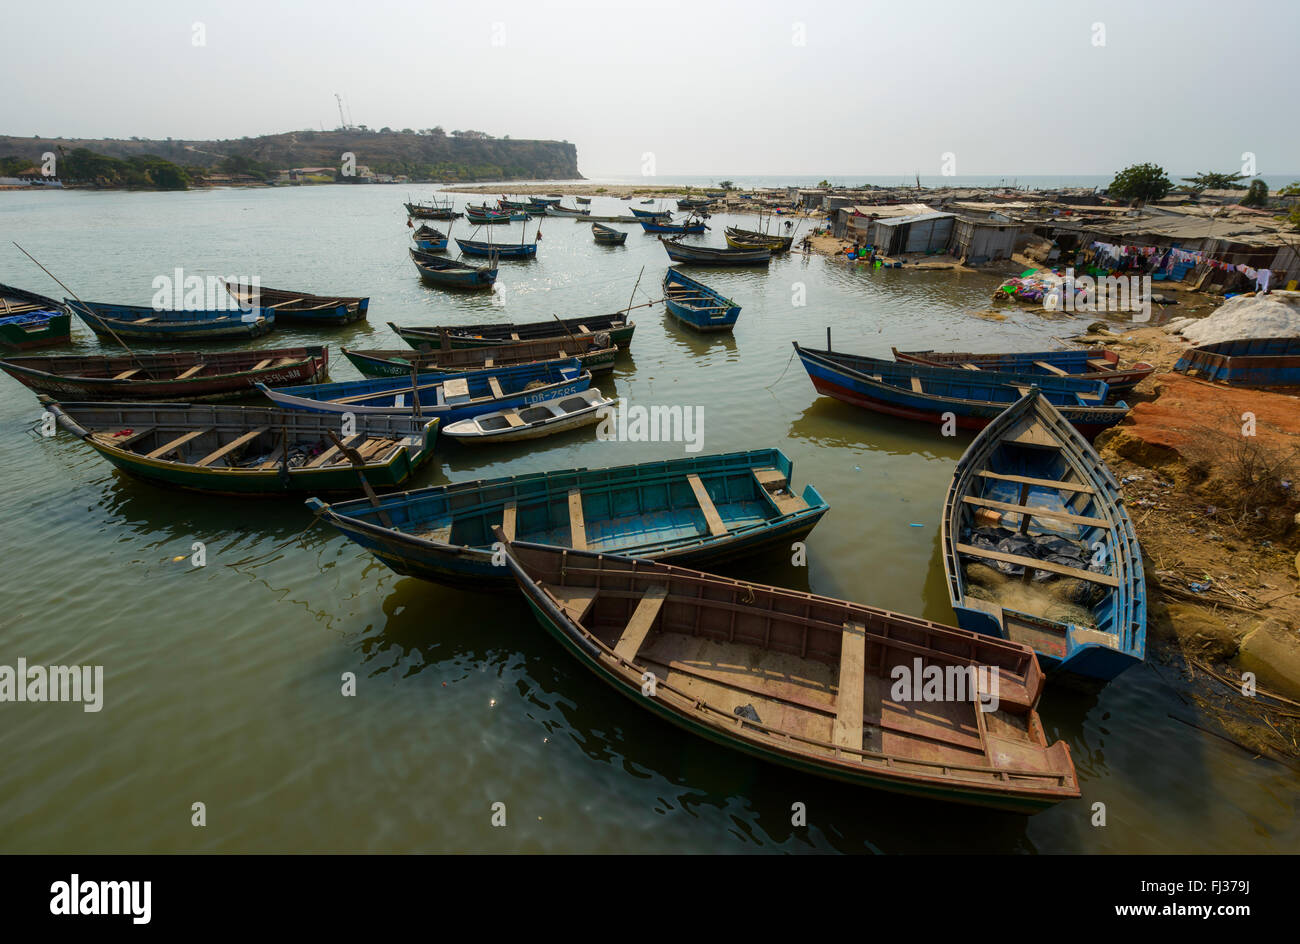 Fishing boats, Angola, Africa - Stock Image